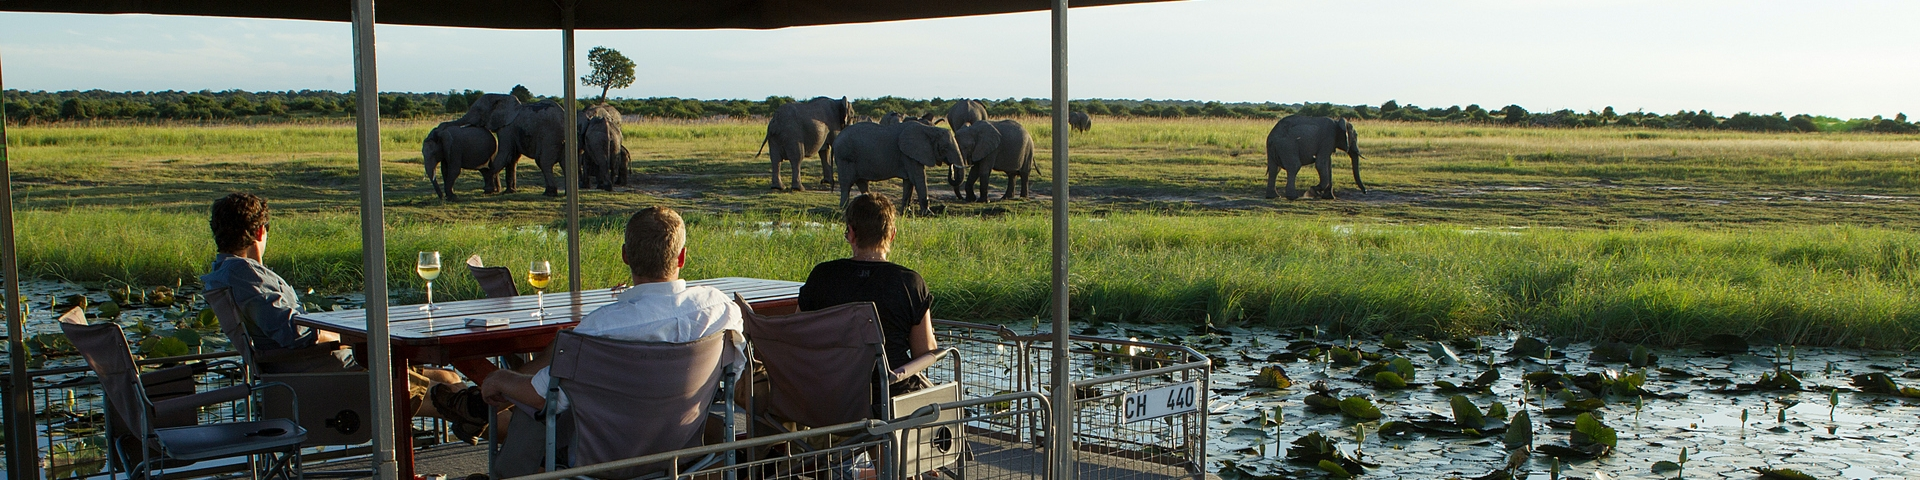 Chobe Game Lodge River Safari Elephant- banner